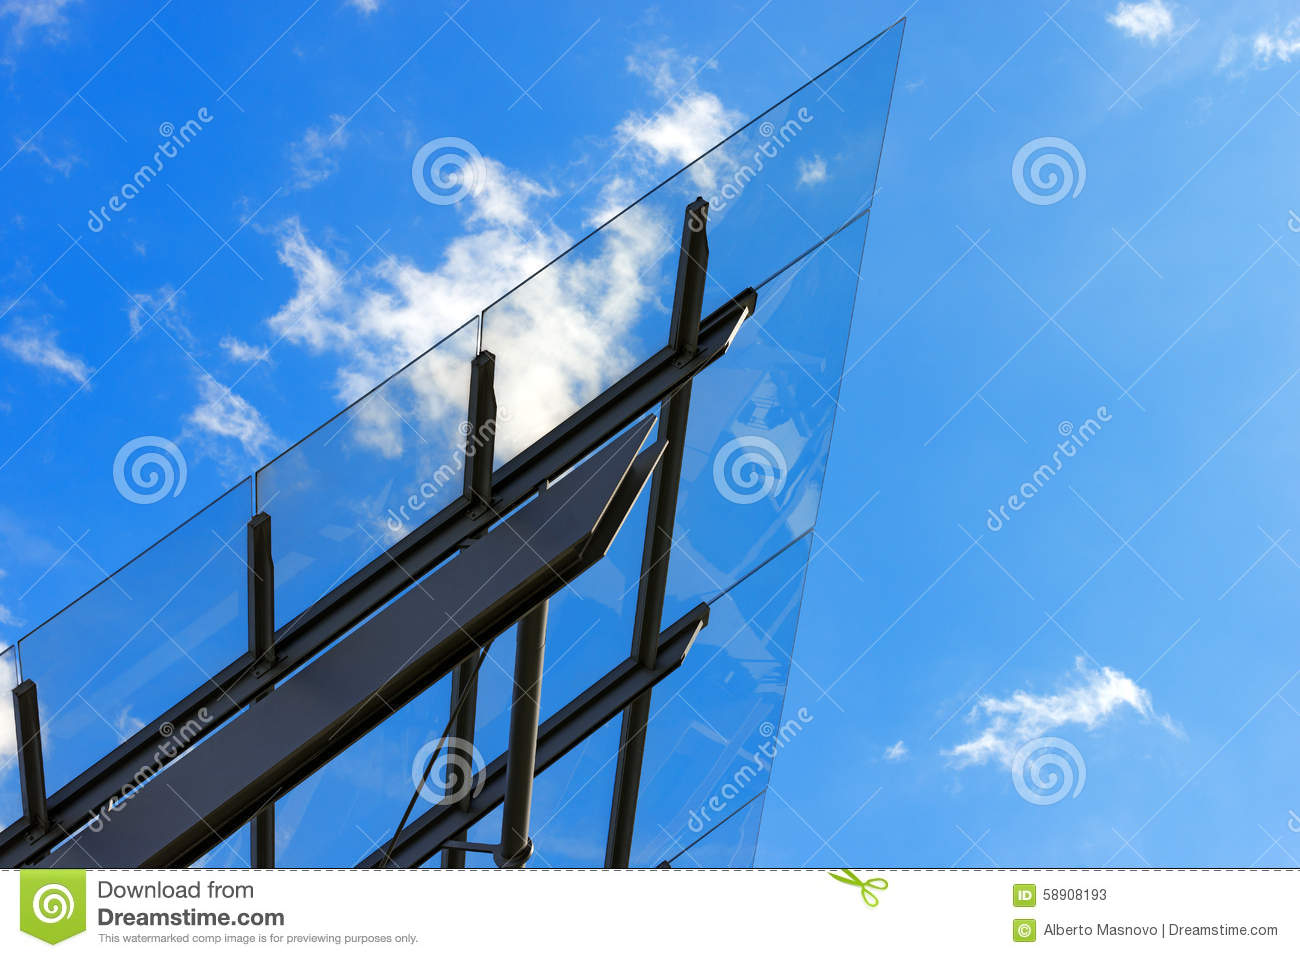 Architectural Details of a Glass and Steel Building